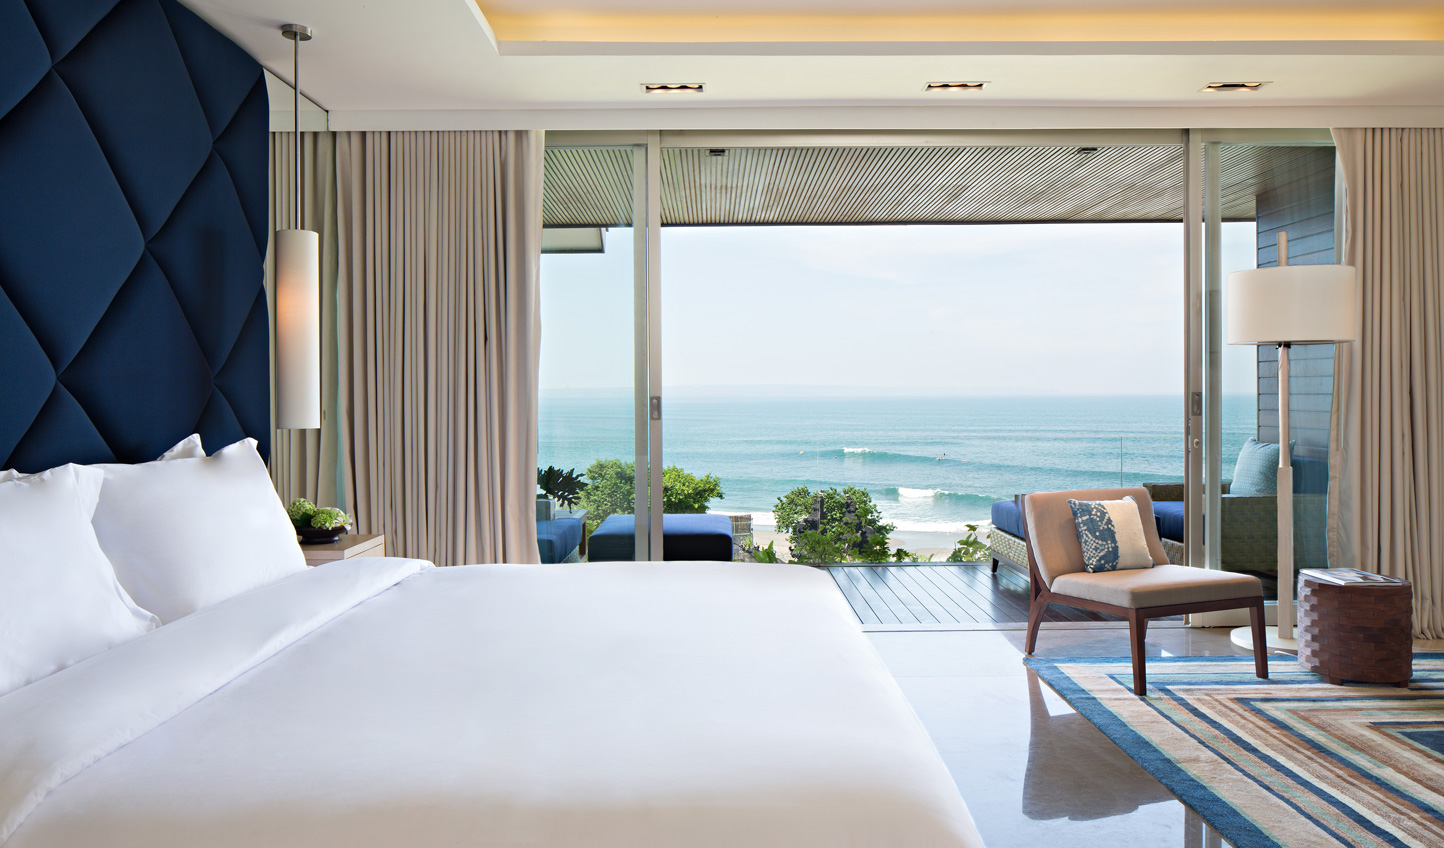 Wake up each morning to views out across the rolling waves